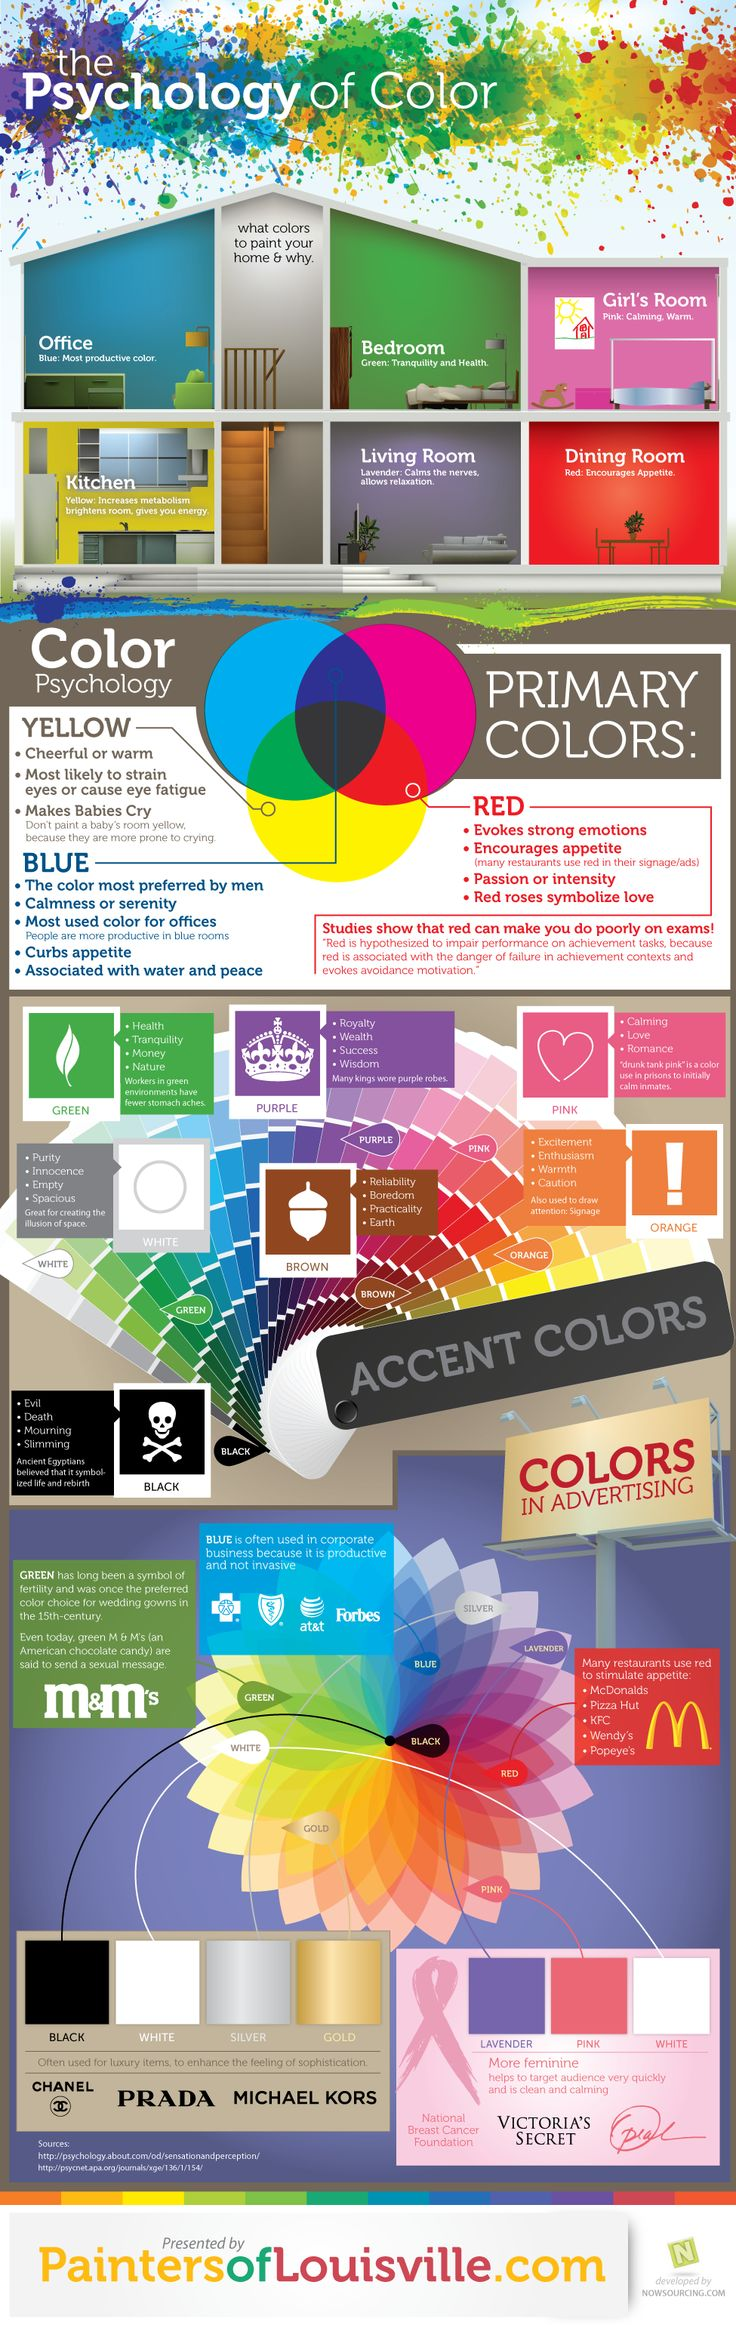 Psychology Of Color Infographic Ever Wonder Why Dining Rooms Tend To Be Red And Kitchens Yellow This Infographic Explains The Psychology Beneath